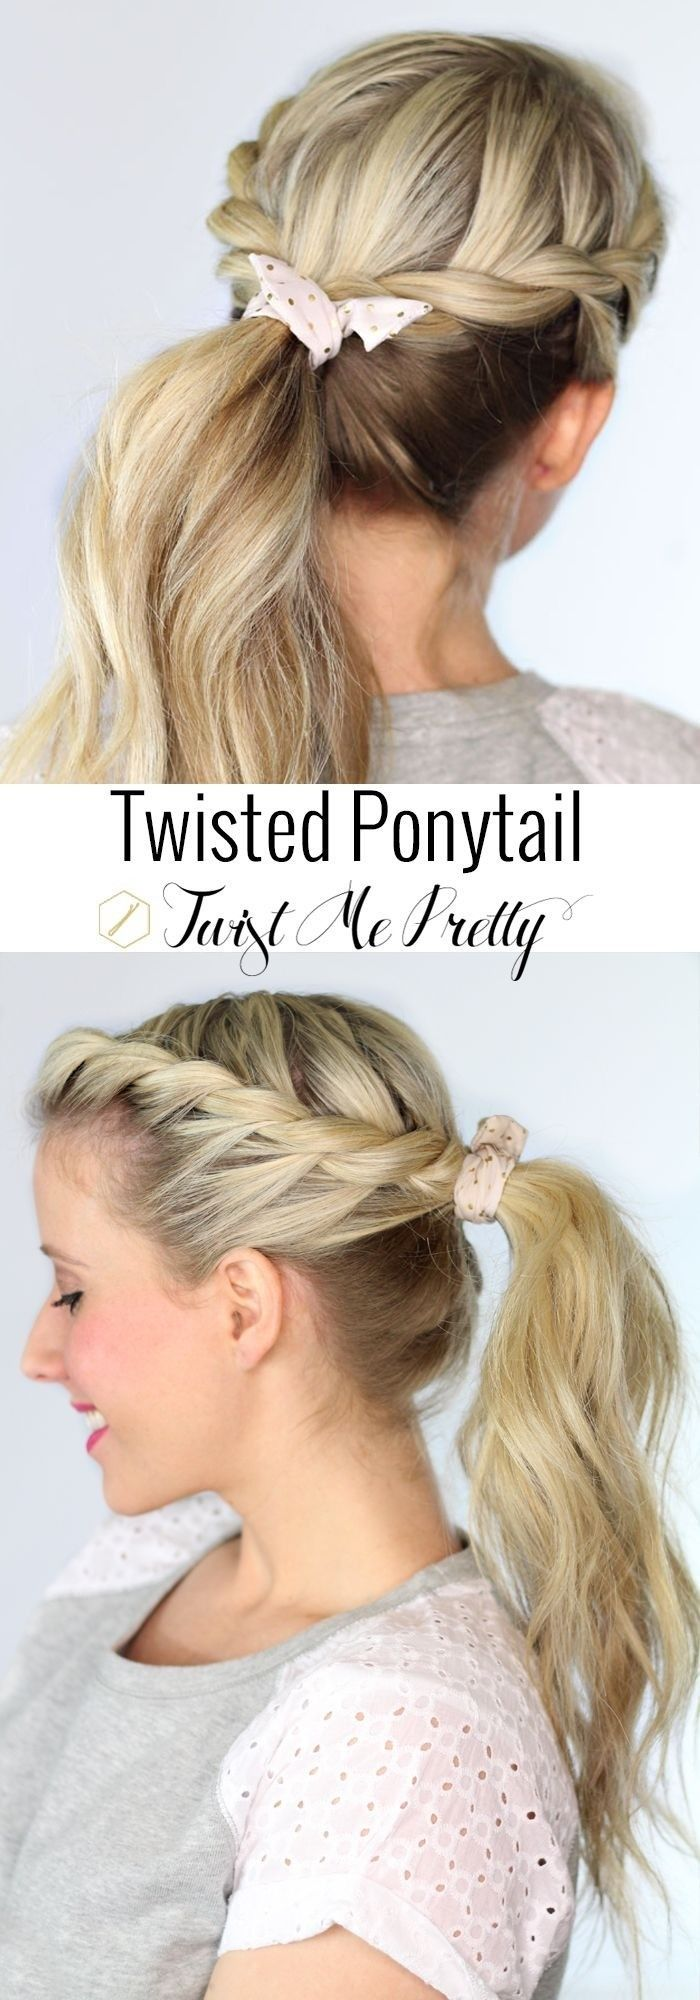 Cute Ponytail Hairstyles 10 Cute Ponytail Ideas Summer And Fall Hairstyles For Long Hair